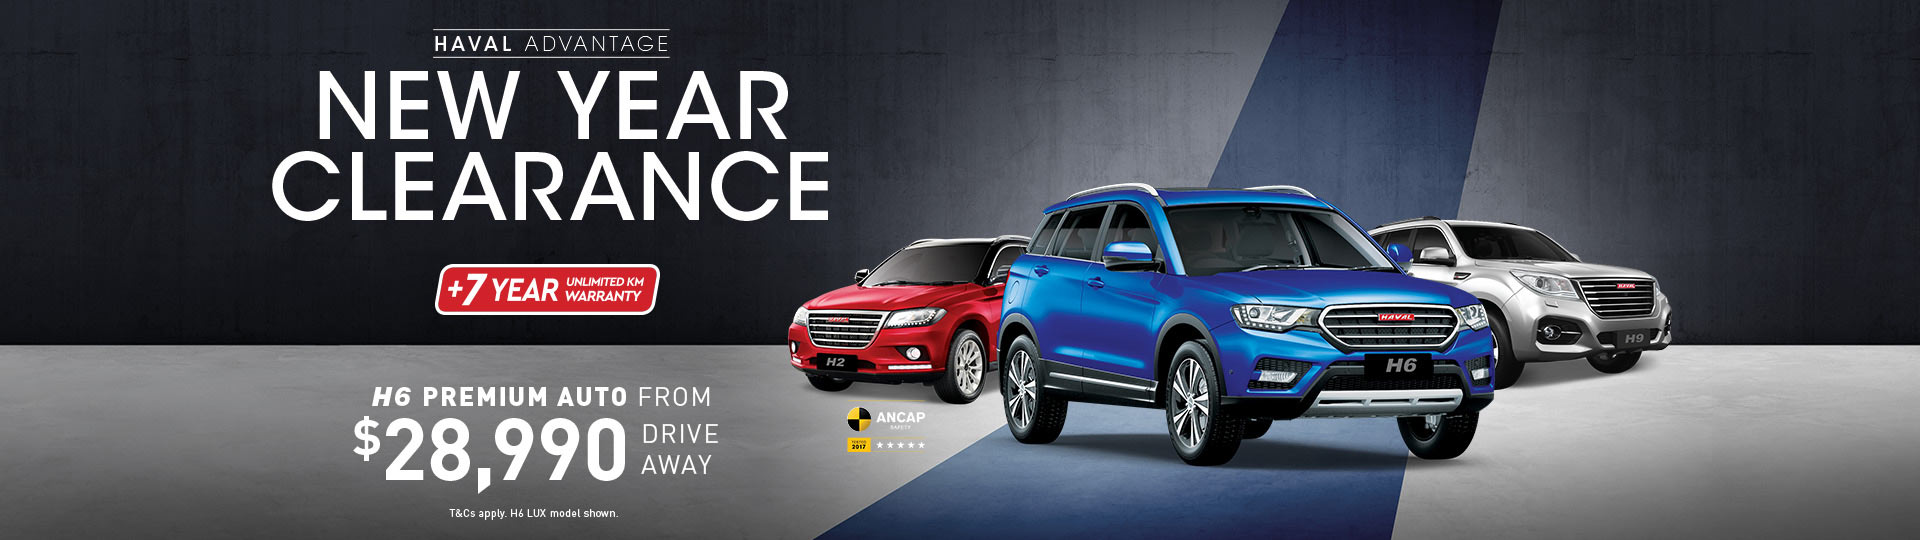 HAVAL New Year Clearance